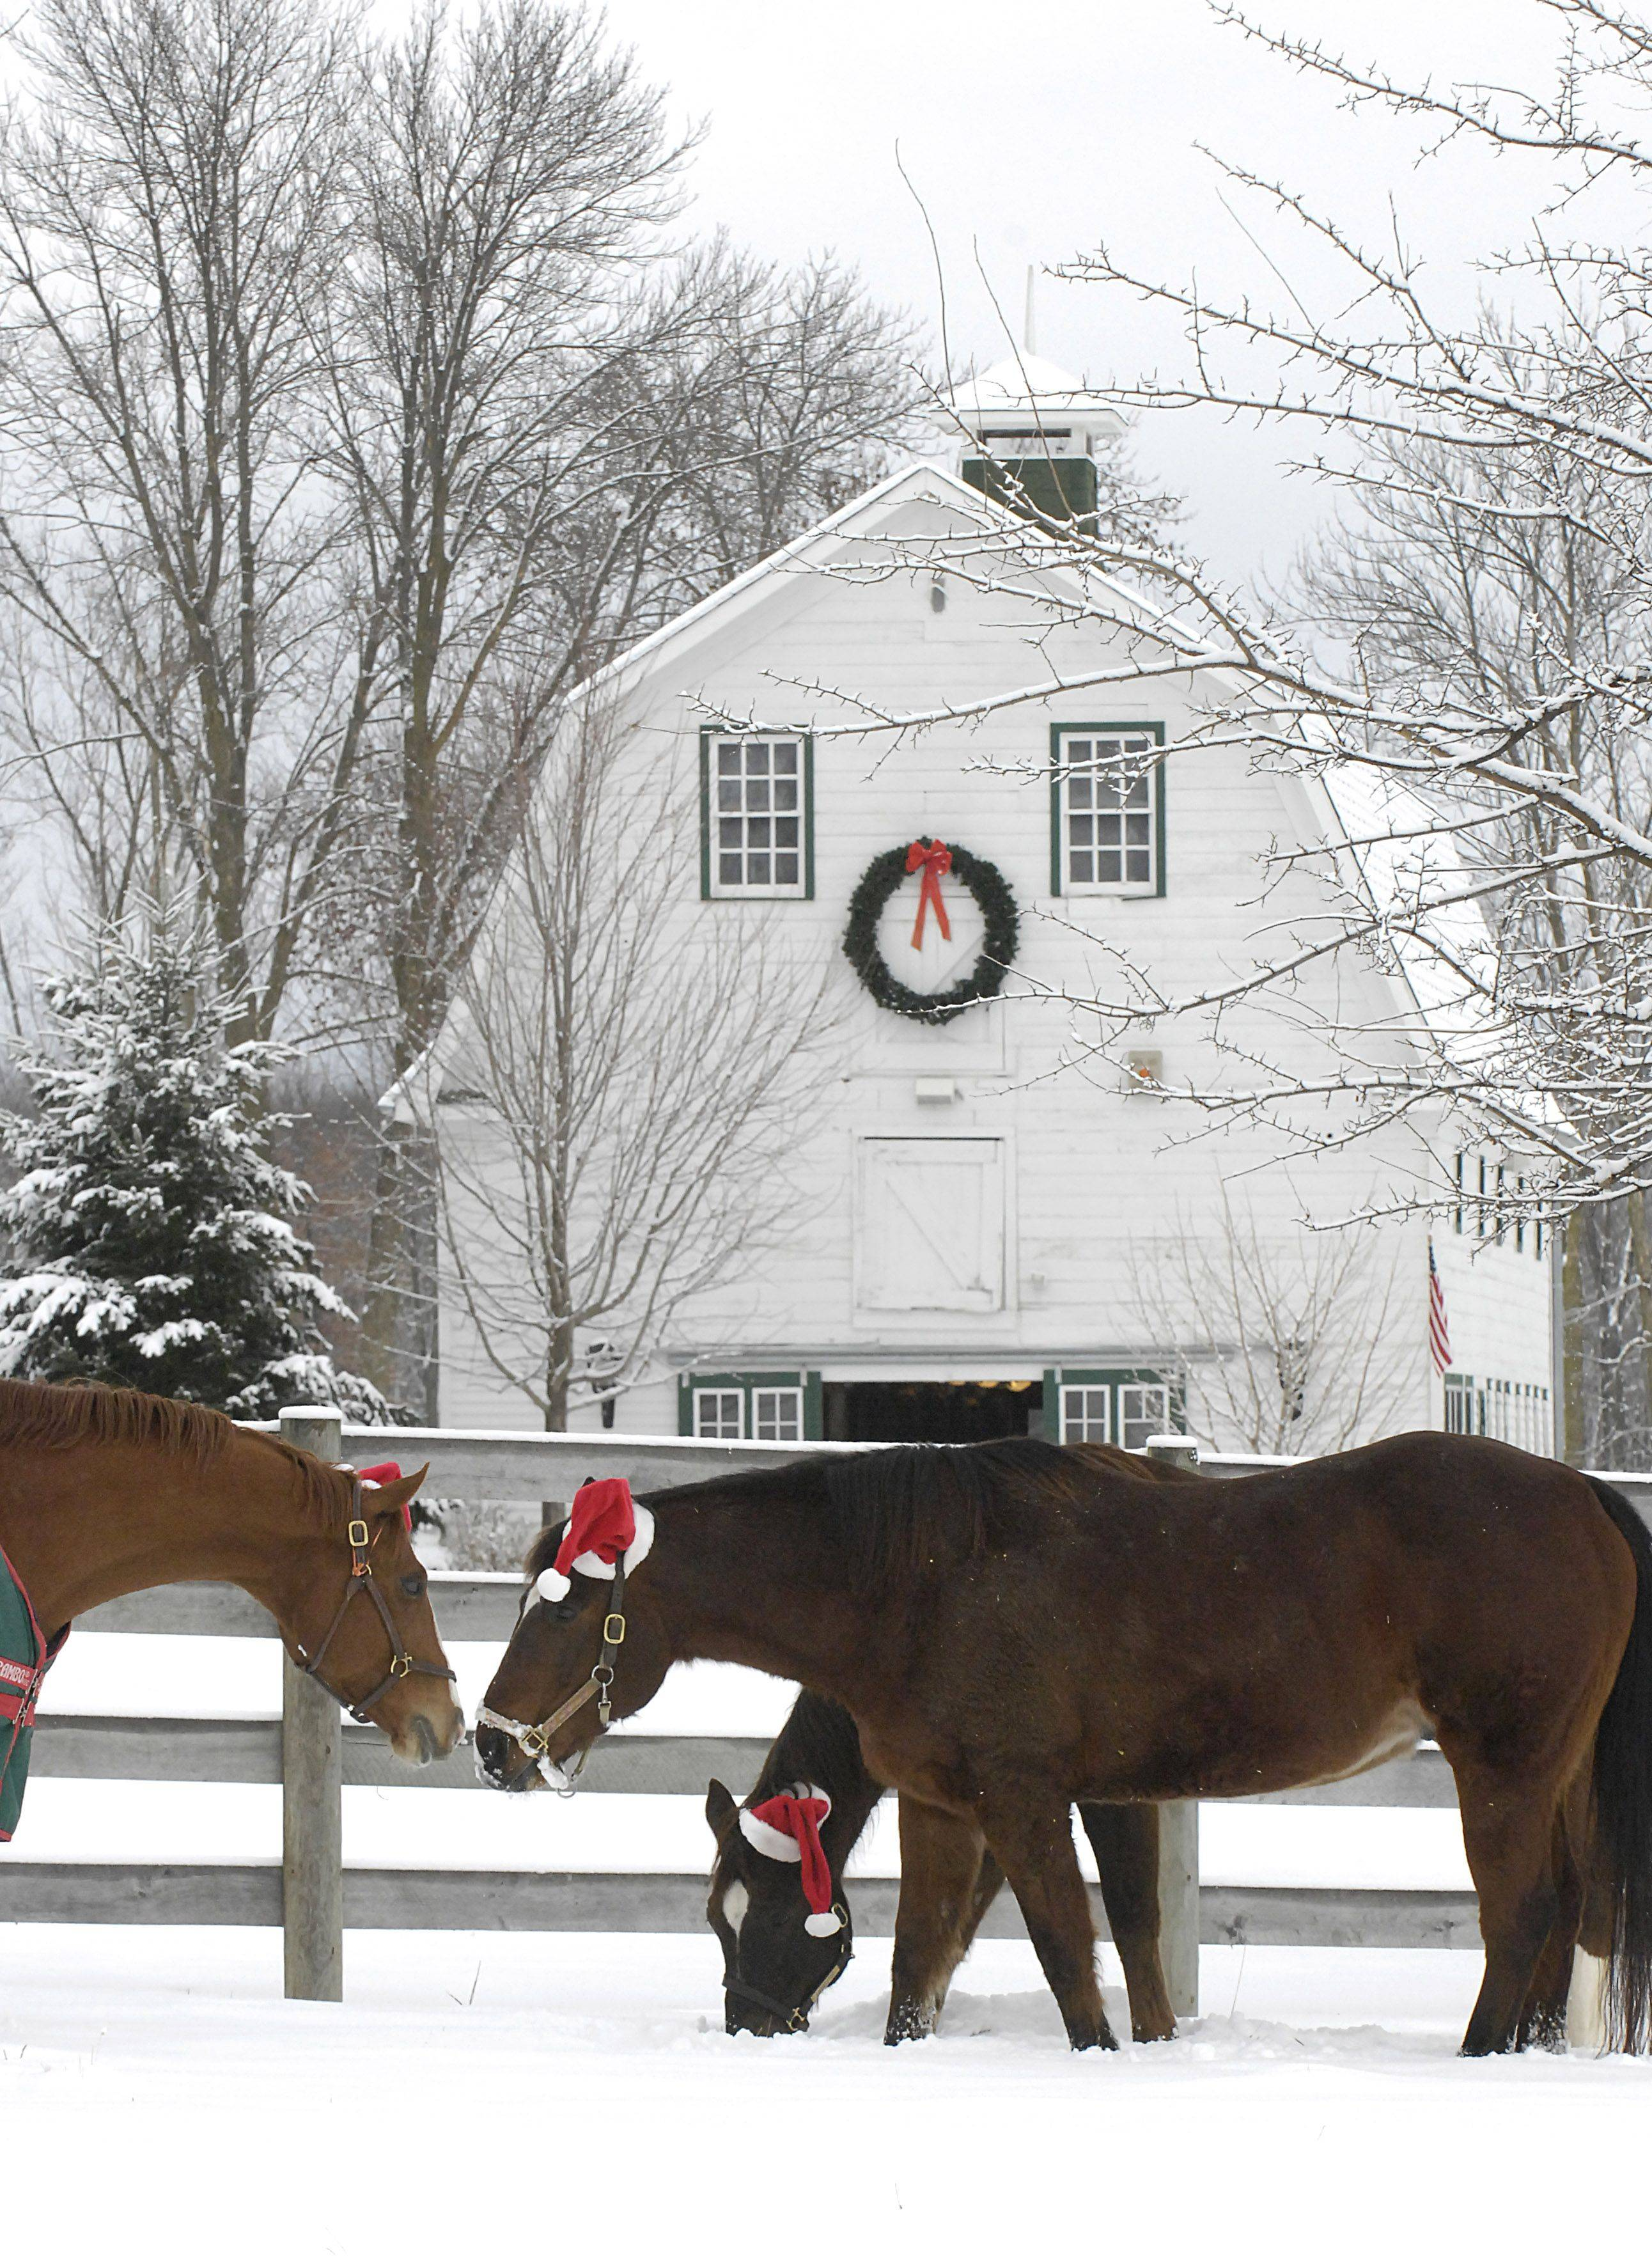 Horses get Christmas spirit in West Dundee